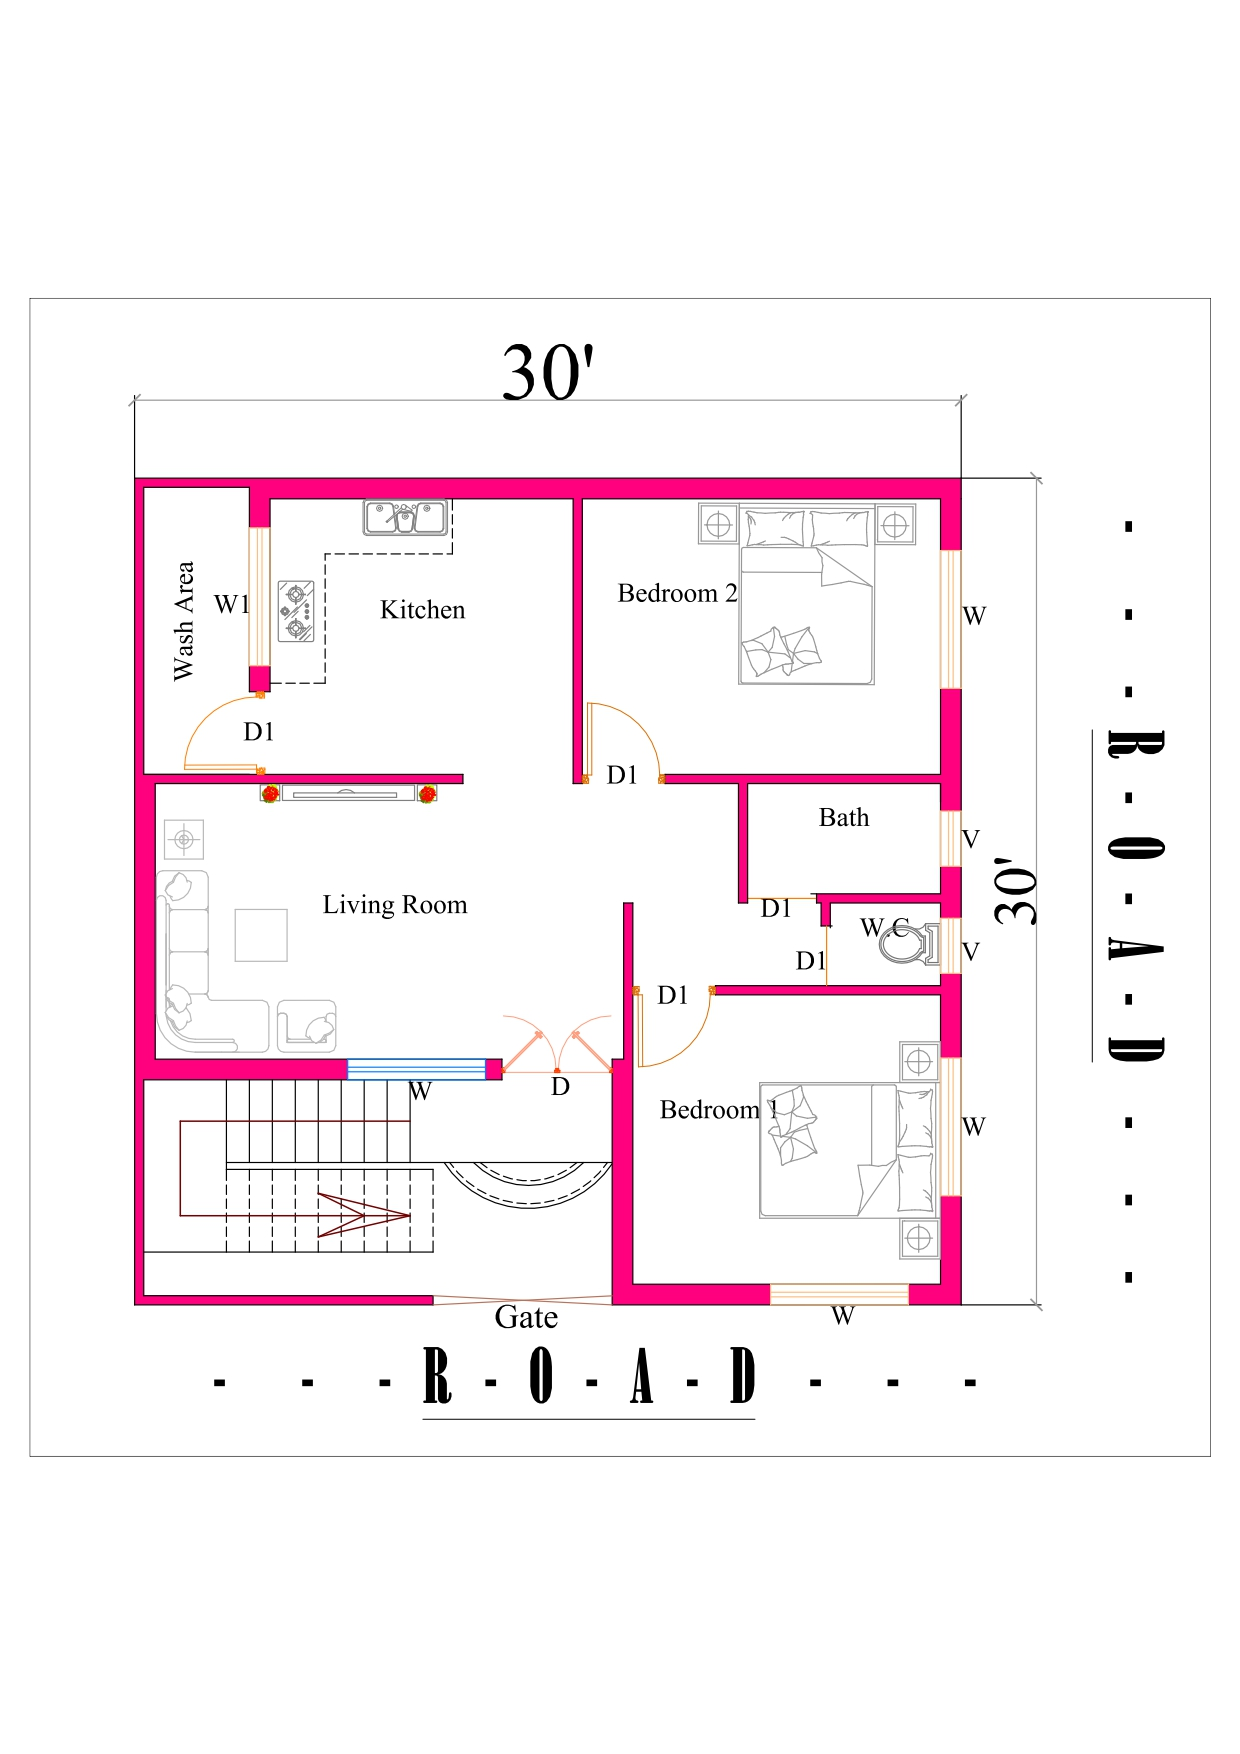 30x30 2bhk House Plan In 900 Square Feet Area Dk 3d Home Design